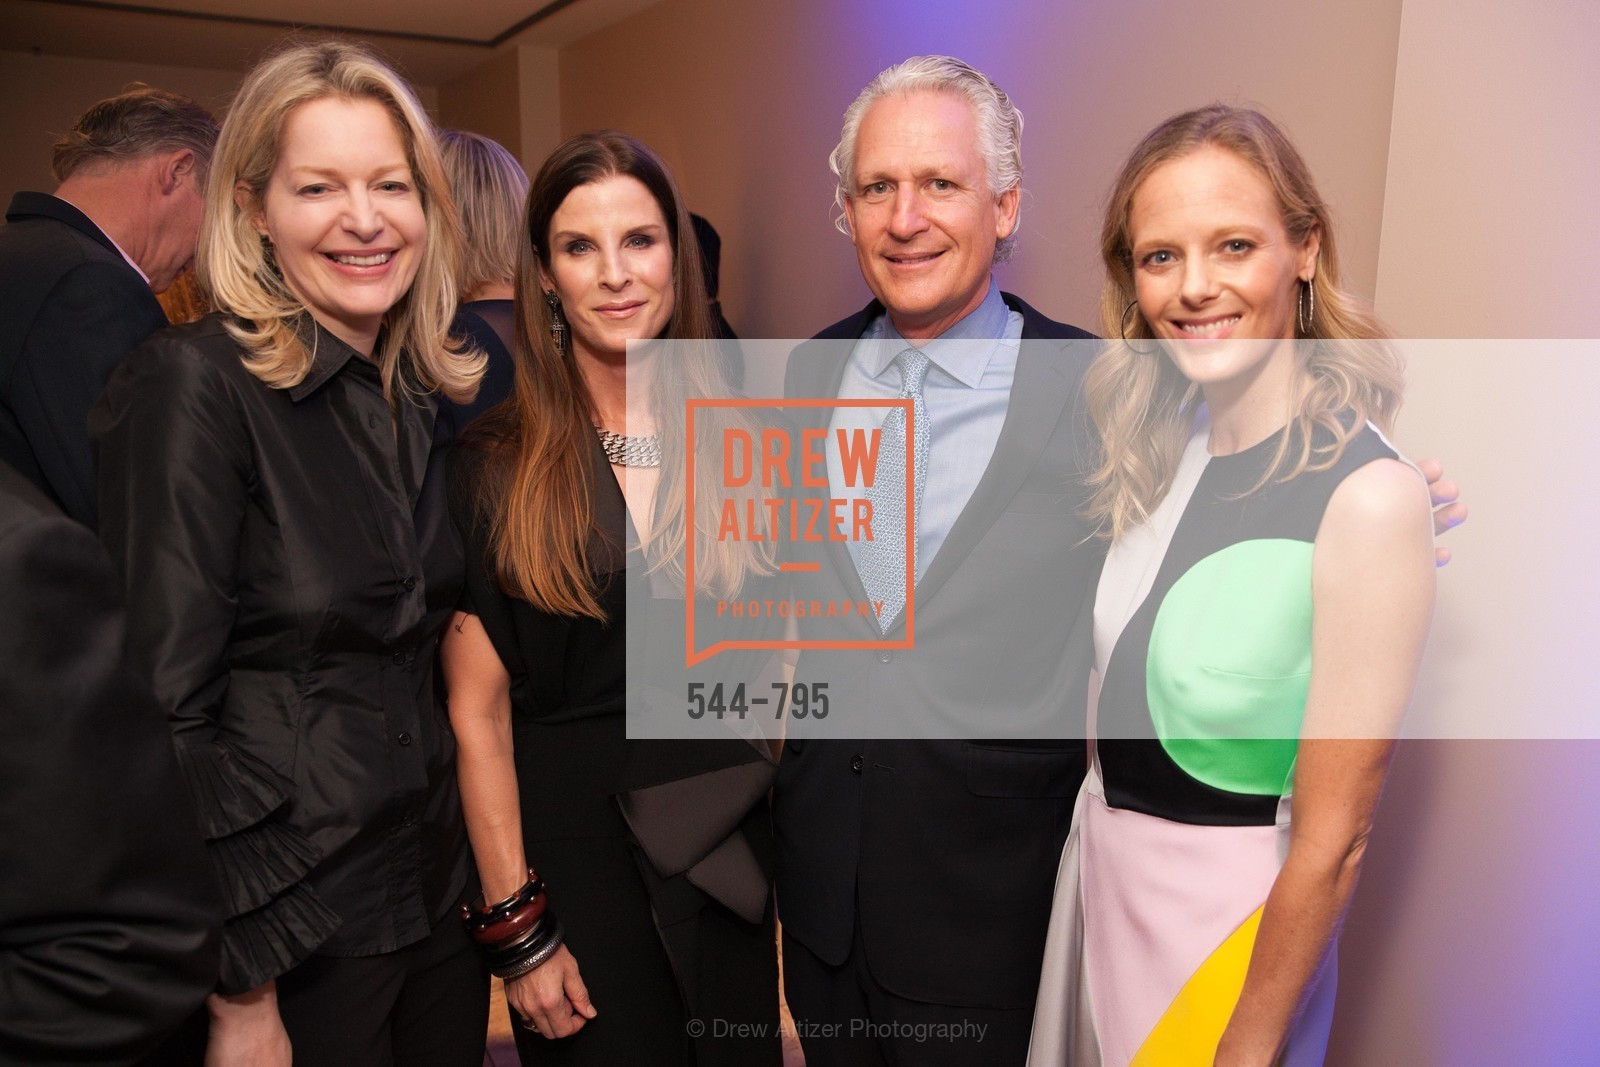 Victoria Raiser, Leslie Podell, Phillip Raiser, Katie Traina, COMPASS FAMILY SERVICES Annual Spring Benefit:  Every Family Needs A Home, US, April 23rd, 2015,Drew Altizer, Drew Altizer Photography, full-service agency, private events, San Francisco photographer, photographer california